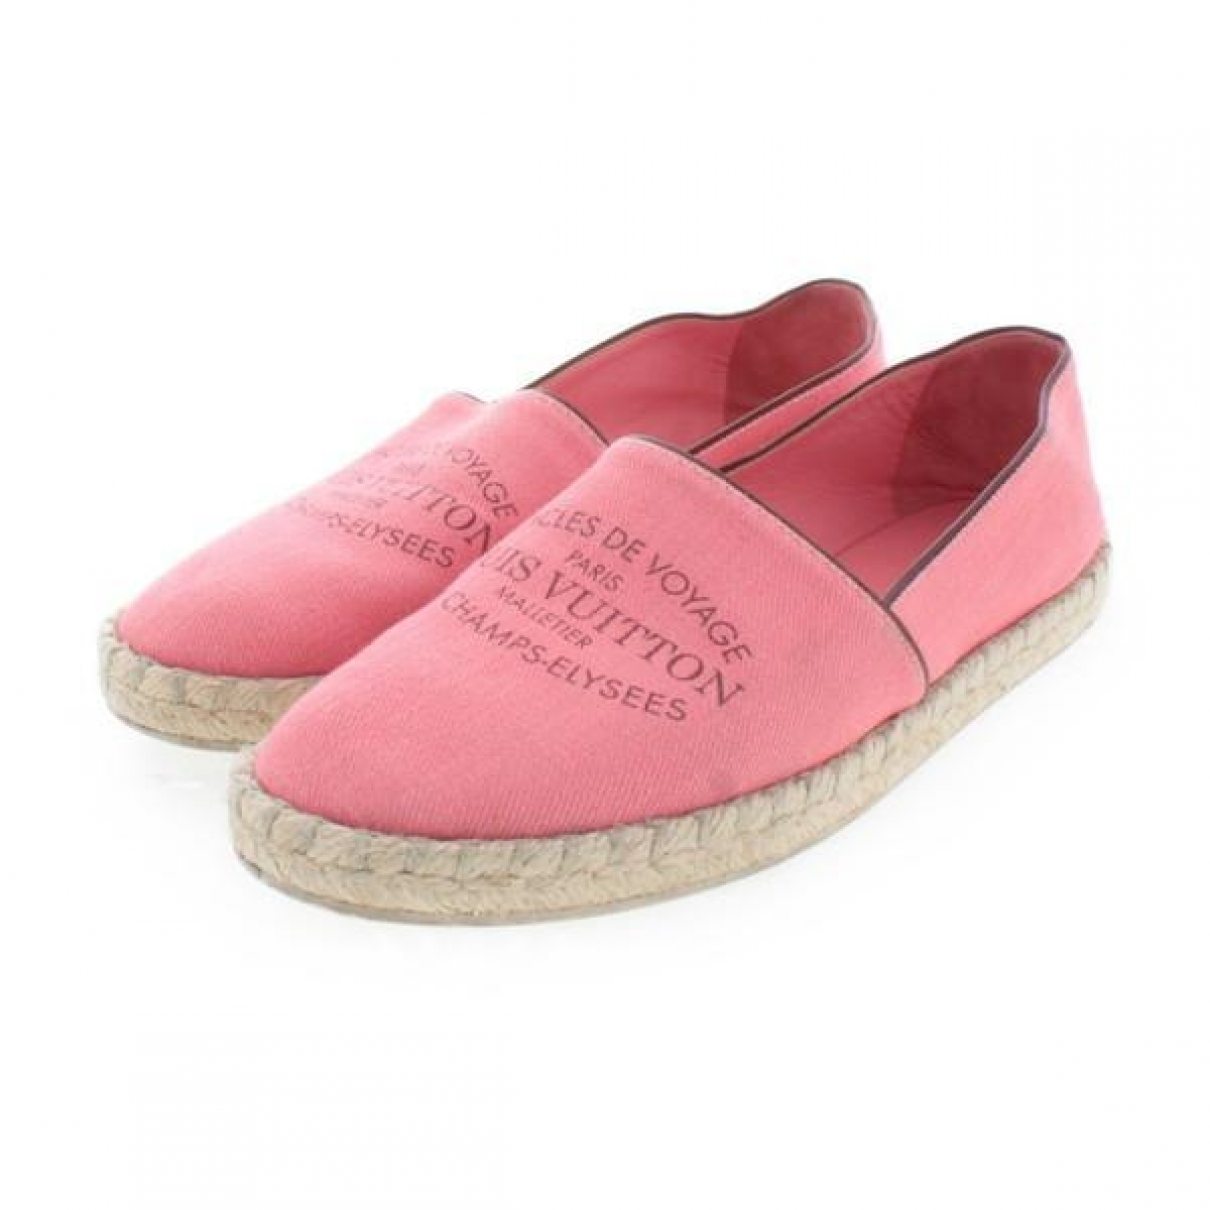 Louis Vuitton \N Espadrilles in  Rosa Leinen